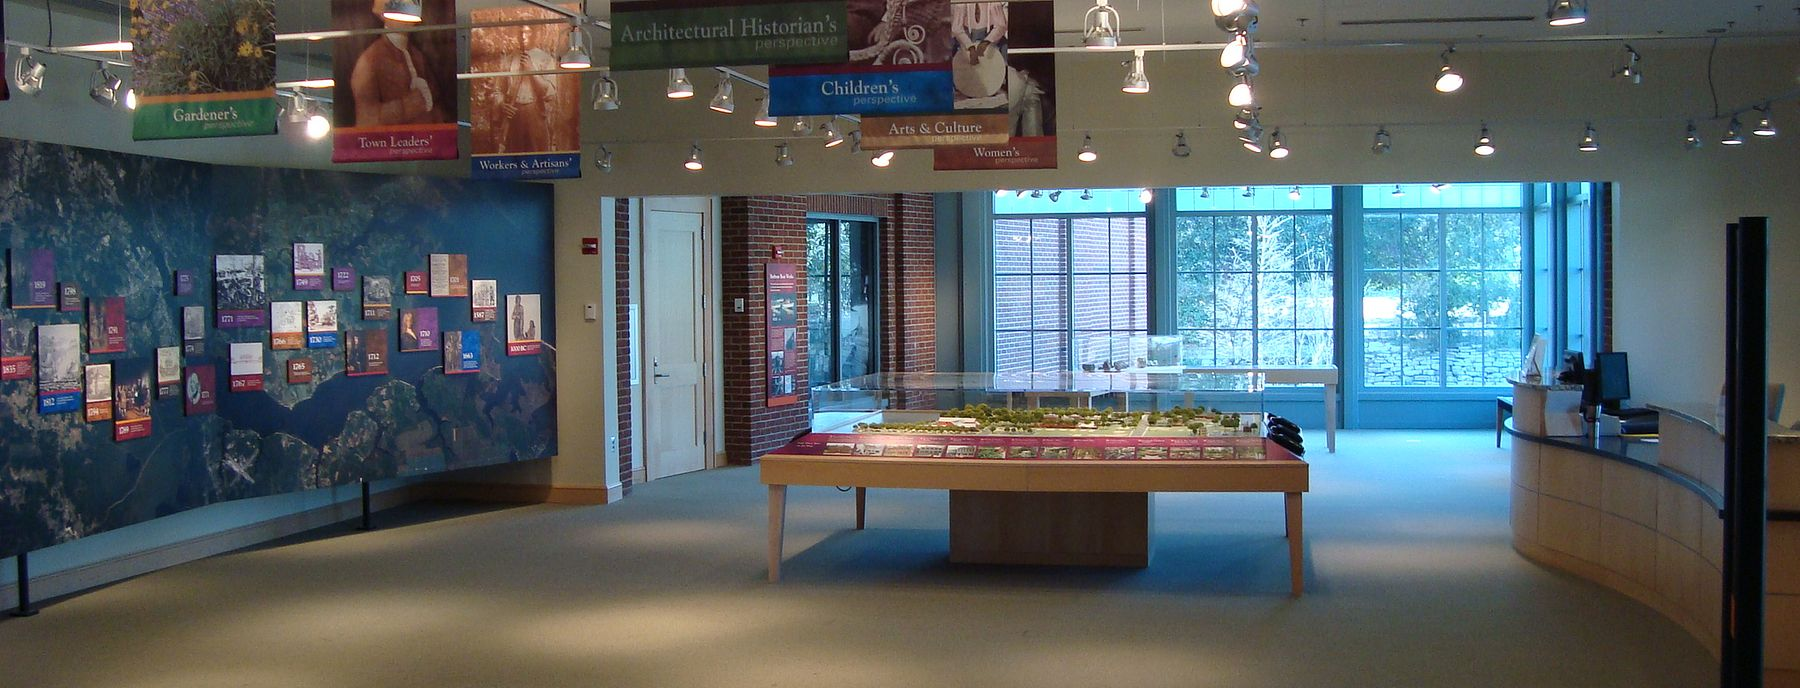 Gateway Gallery located in the North Carolina History Center